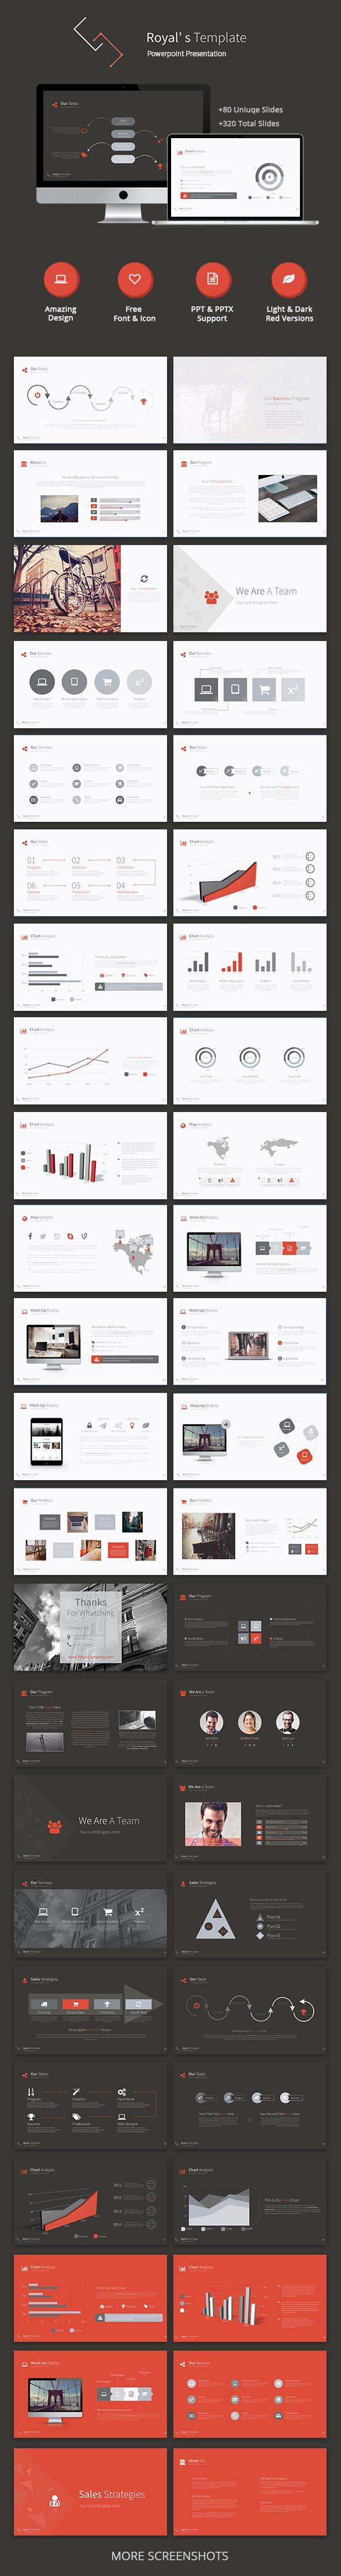 Royal's Powerpoint Template #slides #presentation Download: http://graphicriver.net/item/royals-powerpoint-template/11717128?ref=ksioks